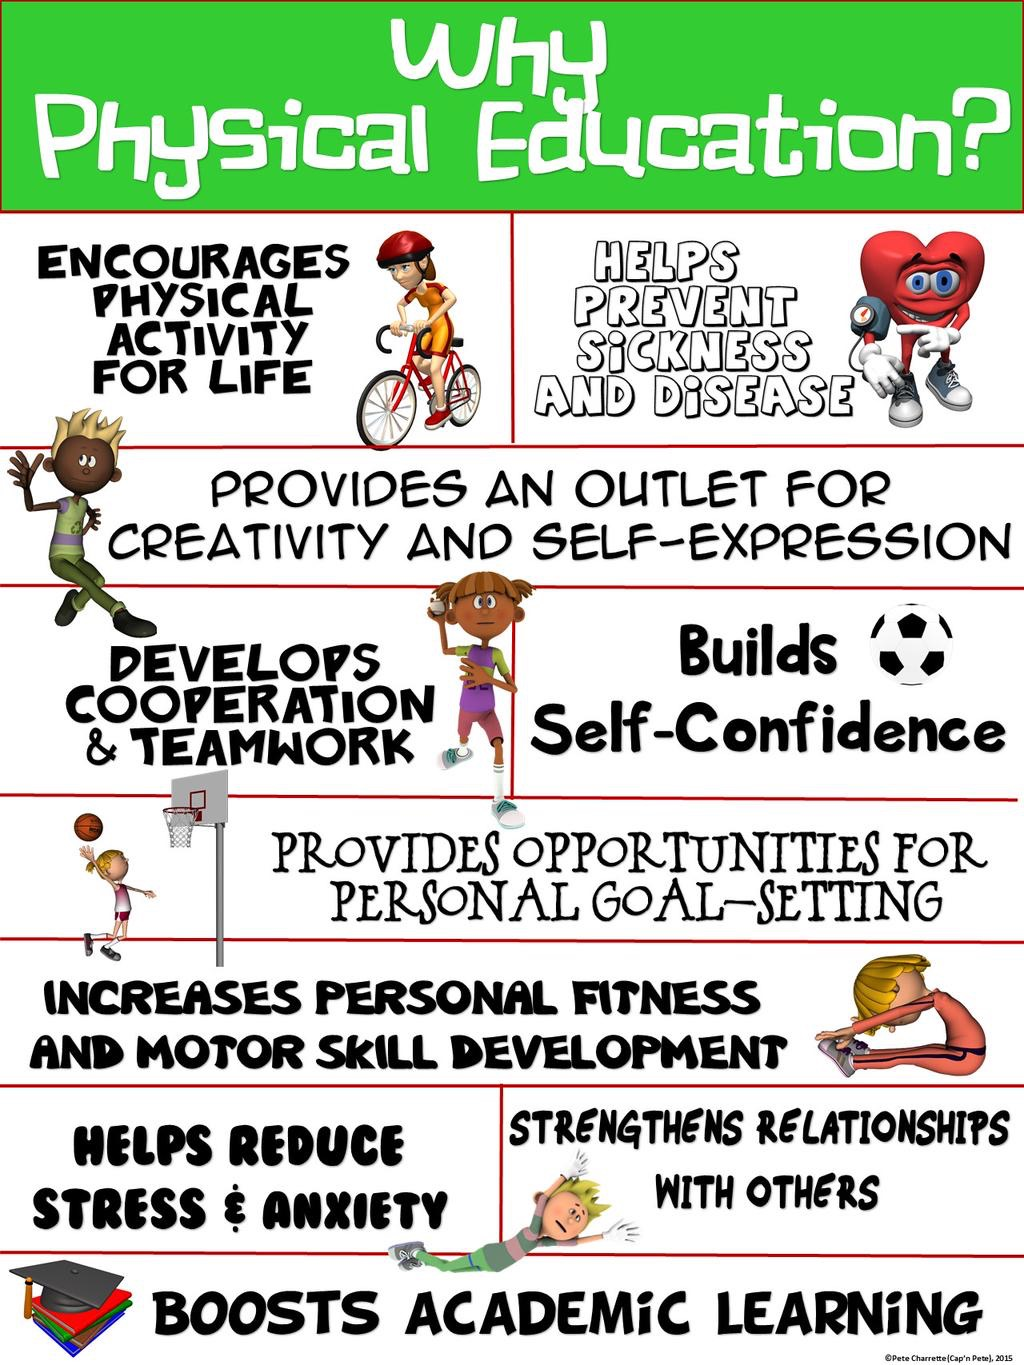 FIT KIDS ARE HAPPY KIDS!